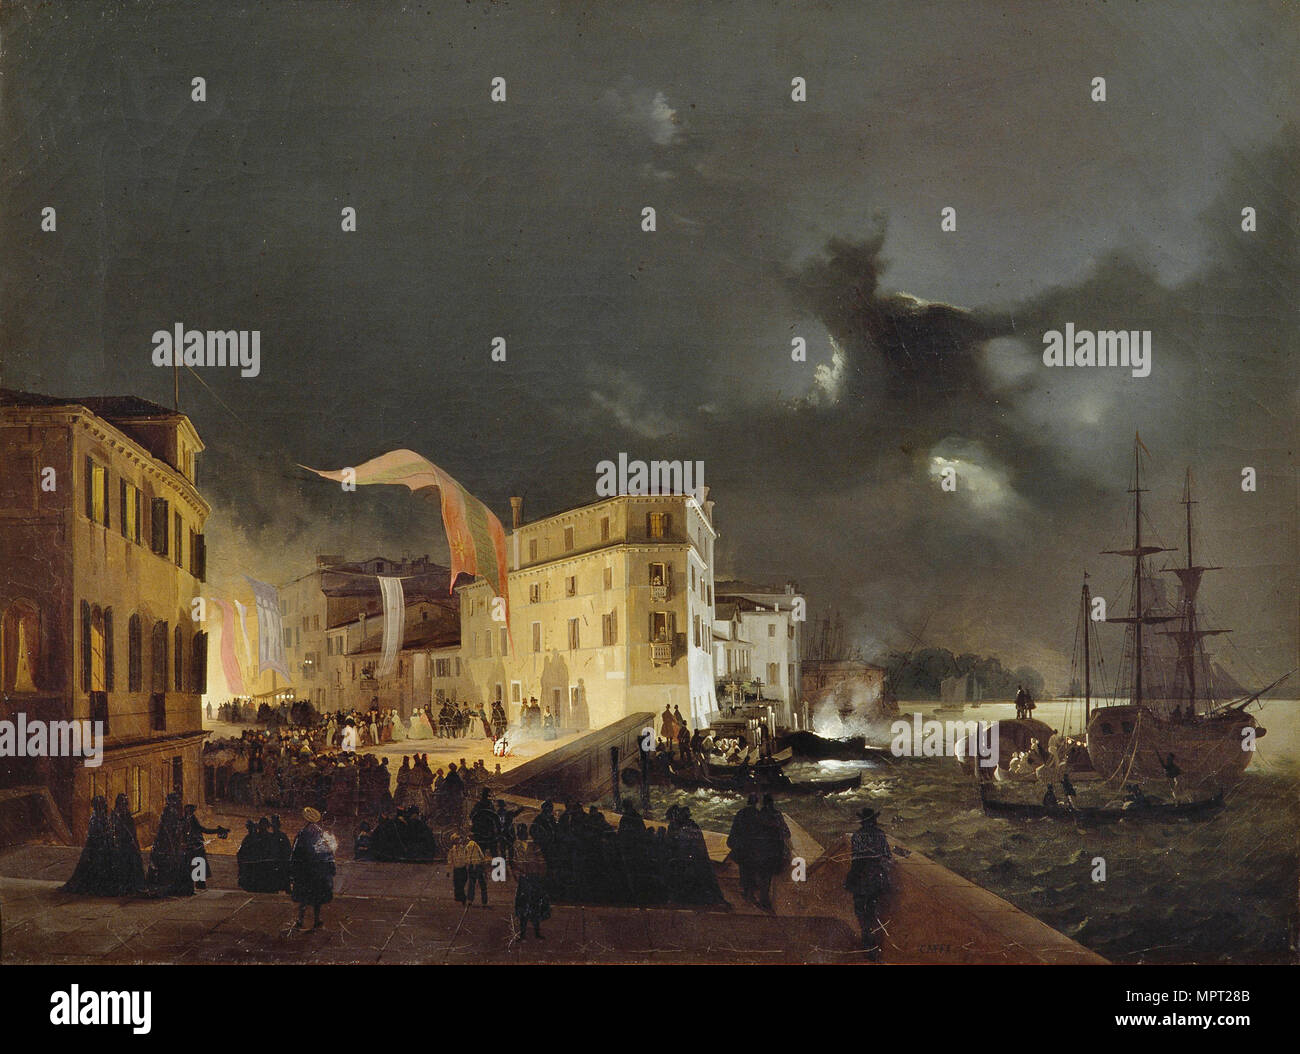 Night Festival in San Pietro di Castello, 1841. - Stock Image